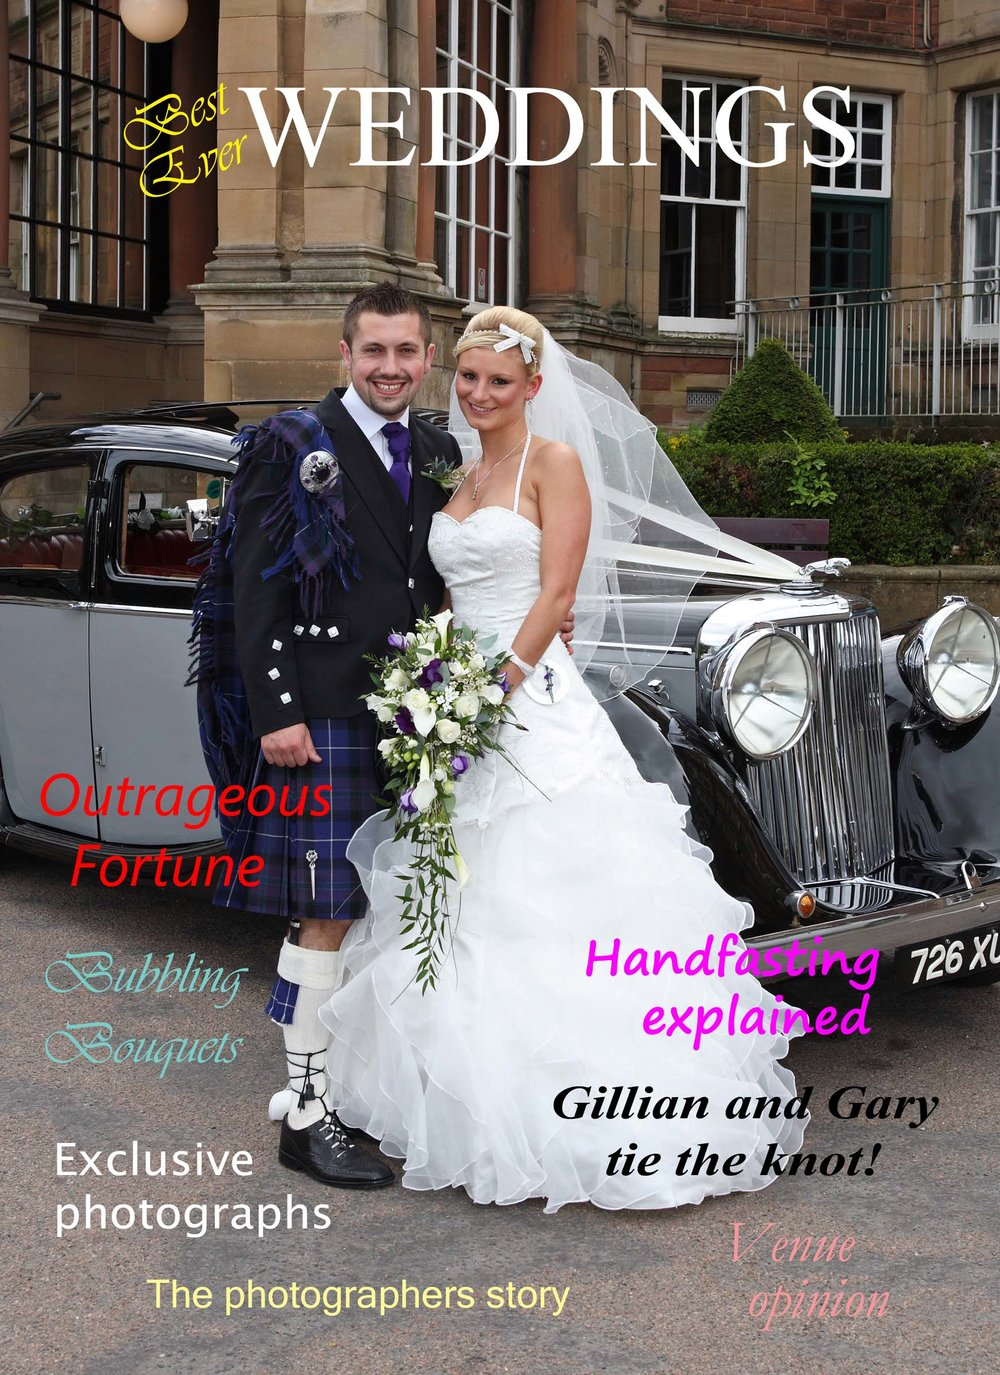 Wedding_Mag_Cover2.jpg